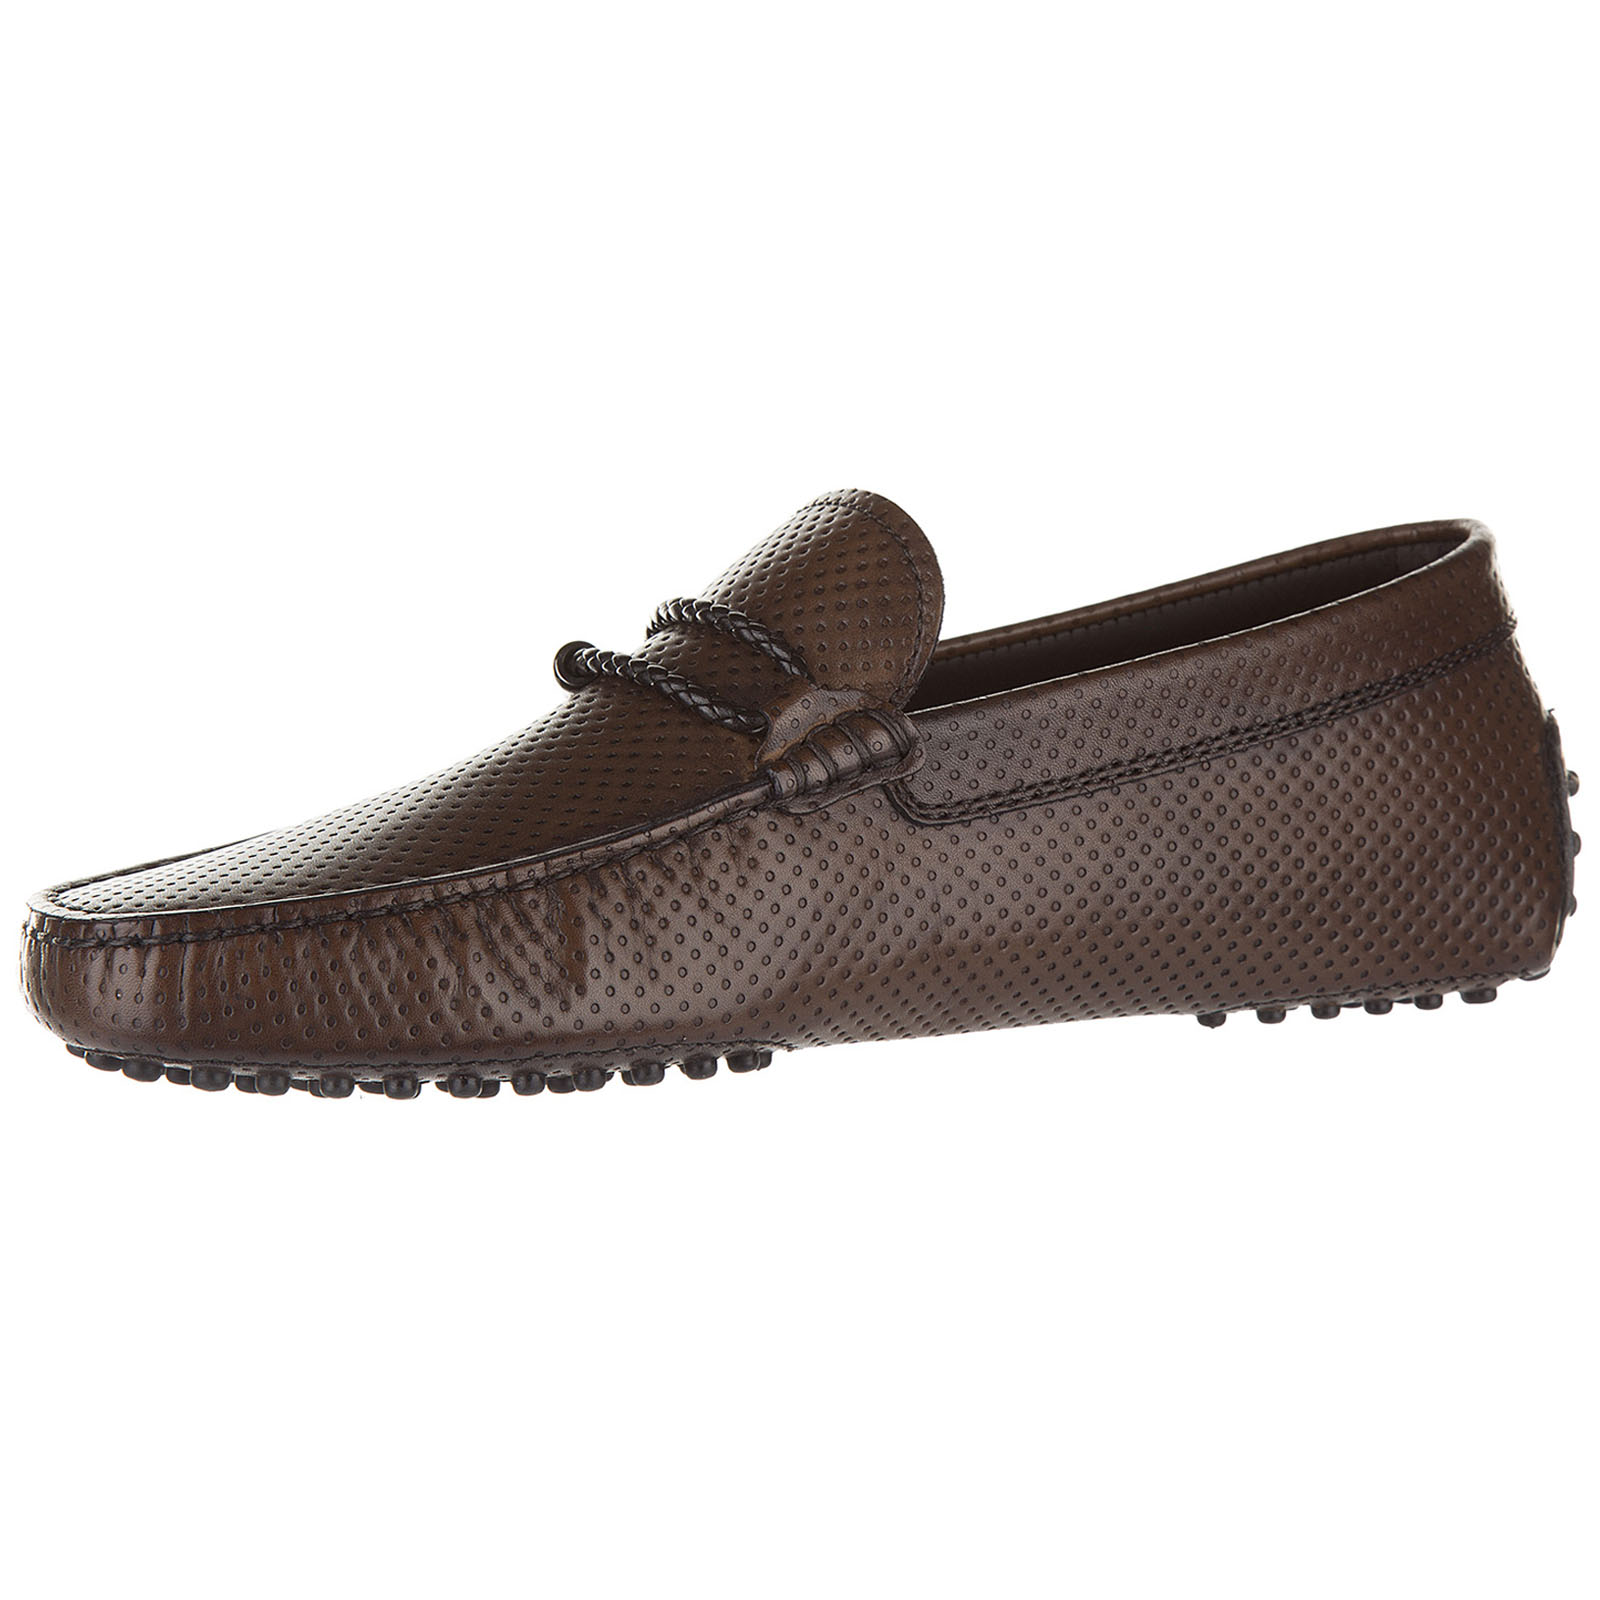 Men's leather loafers moccasins  morsetto club gommini 122